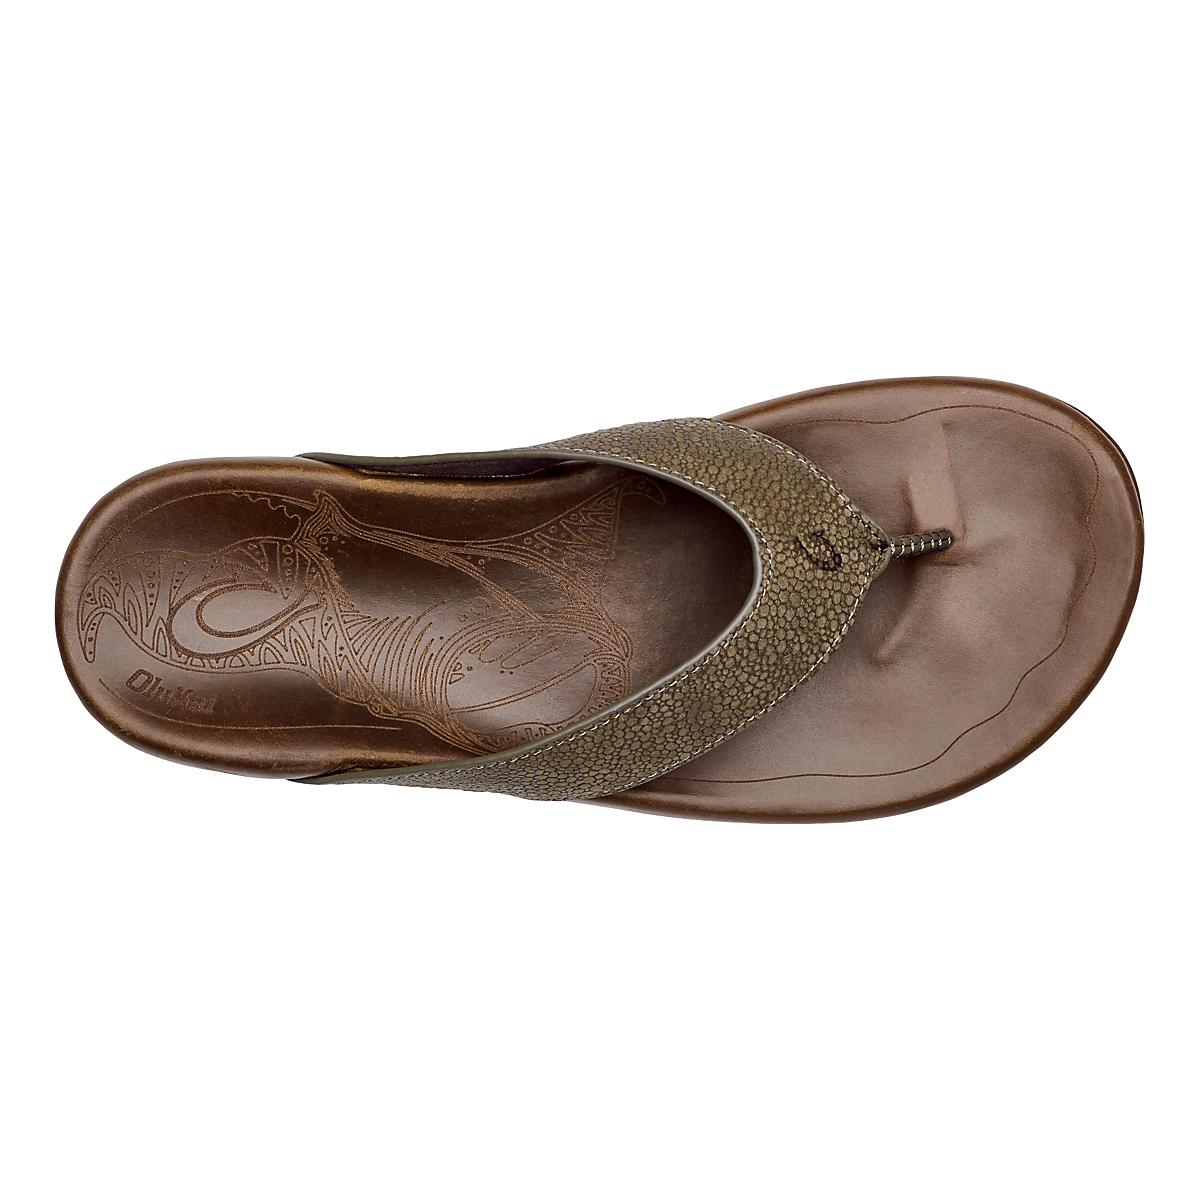 4e0c0c49f1ac Mens OluKai Kohana Kai Sandals Shoe at Road Runner Sports